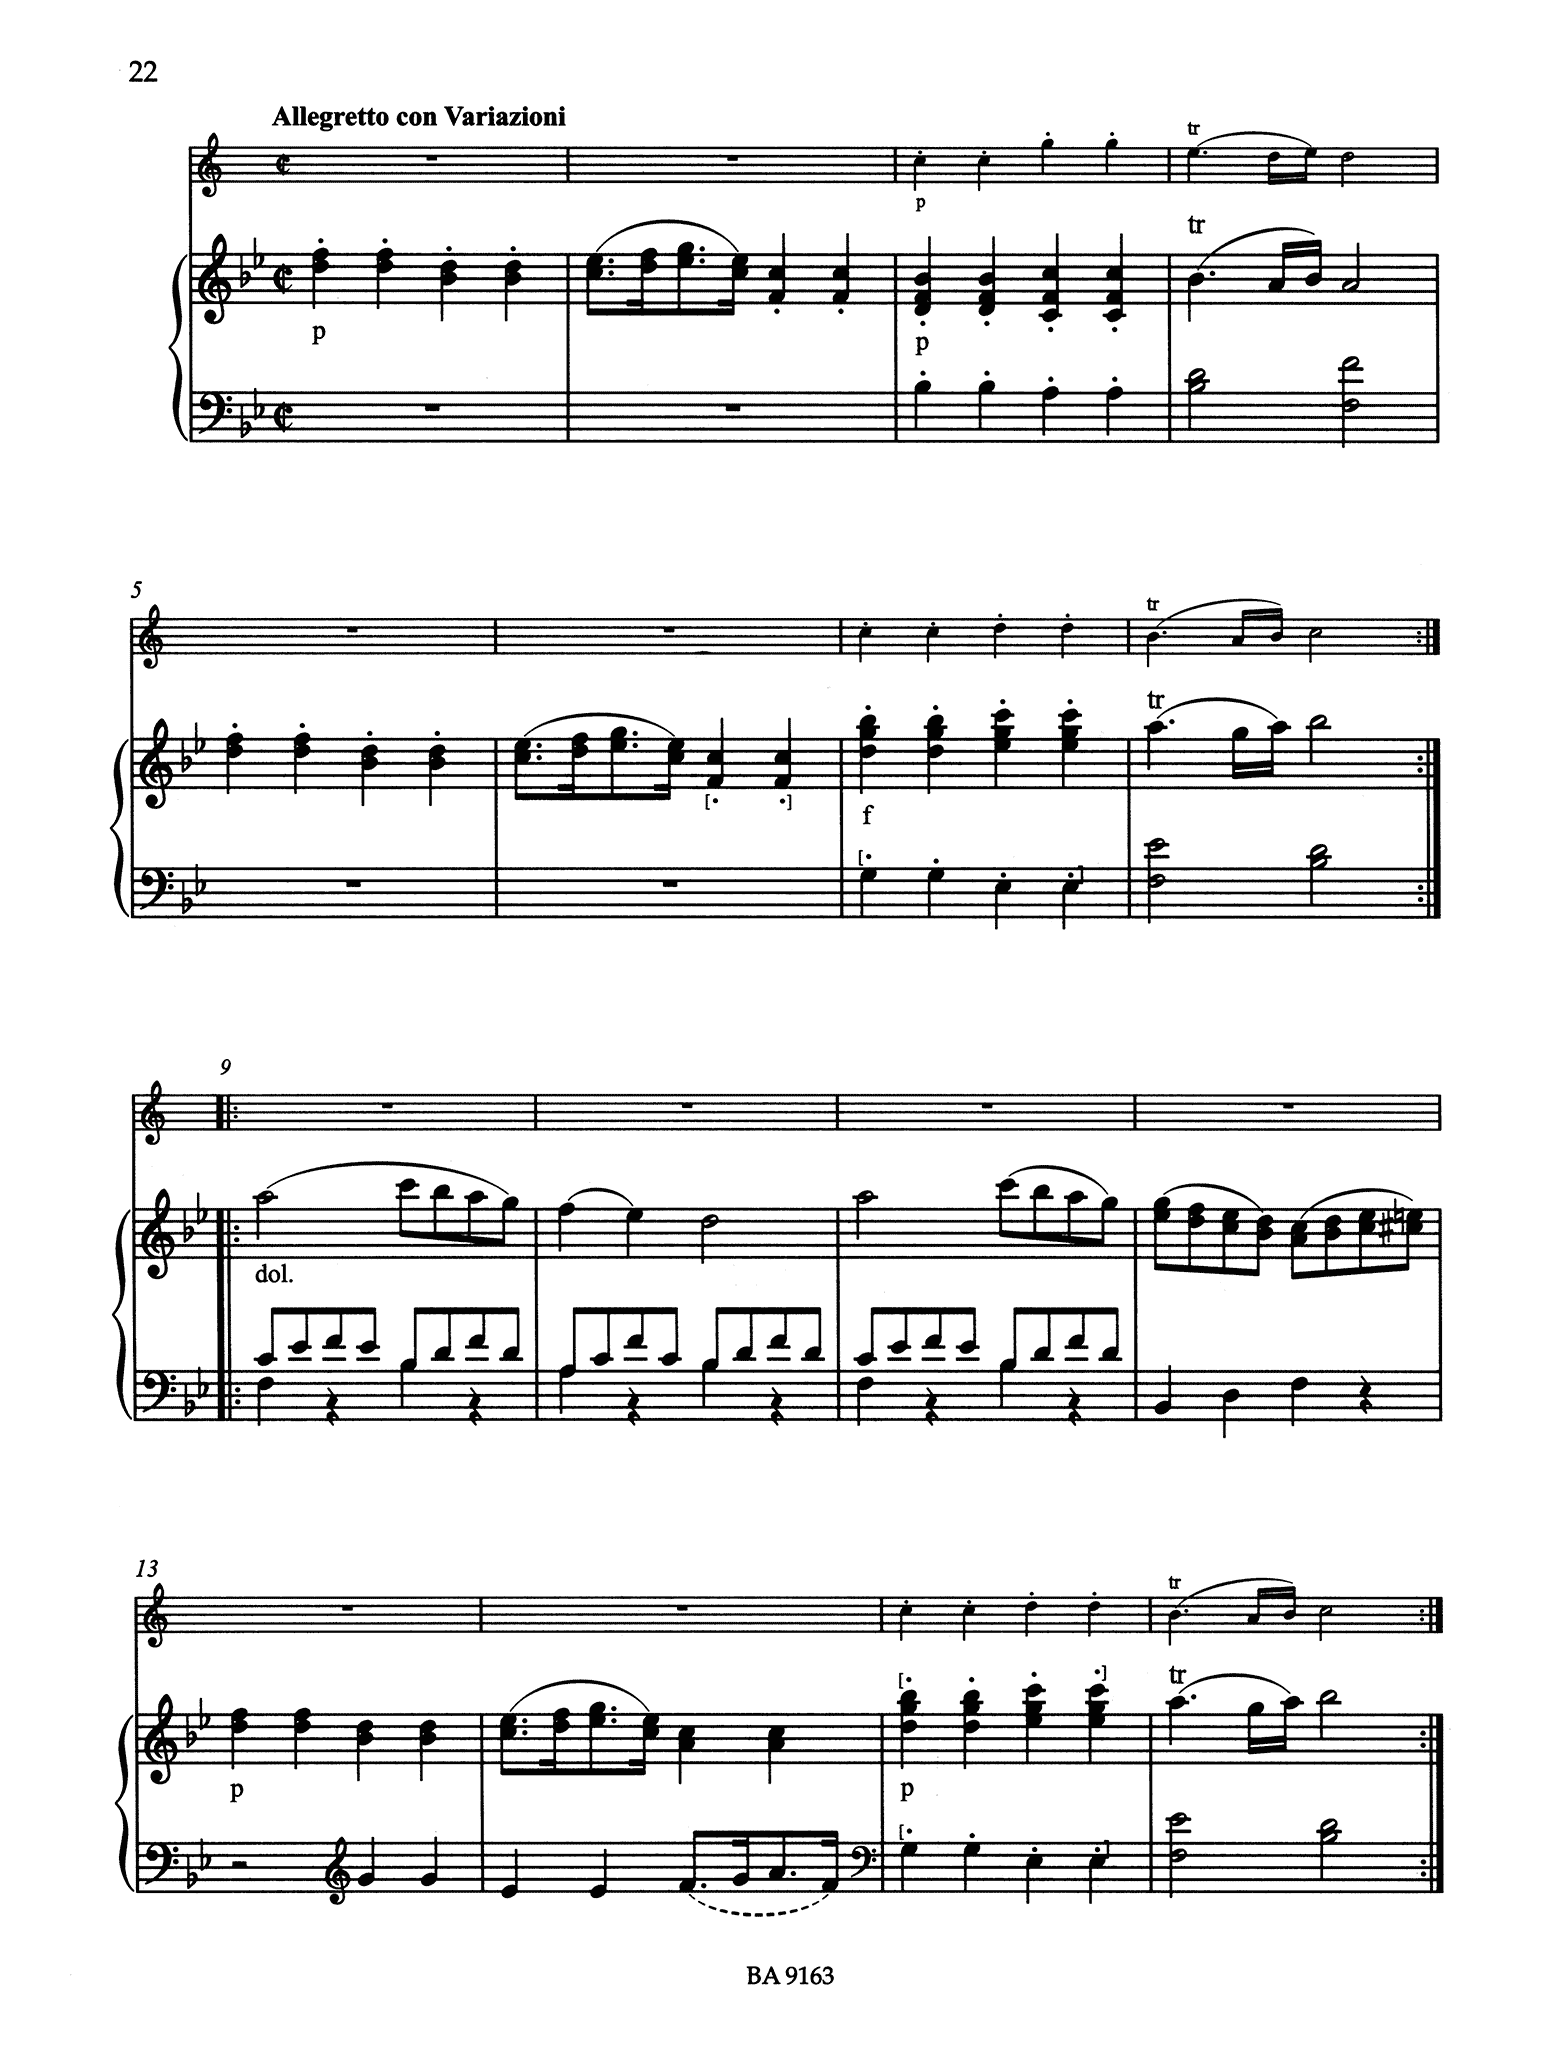 Grande Sonate after the Clarinet Quintet, K. 581 - Movement 4